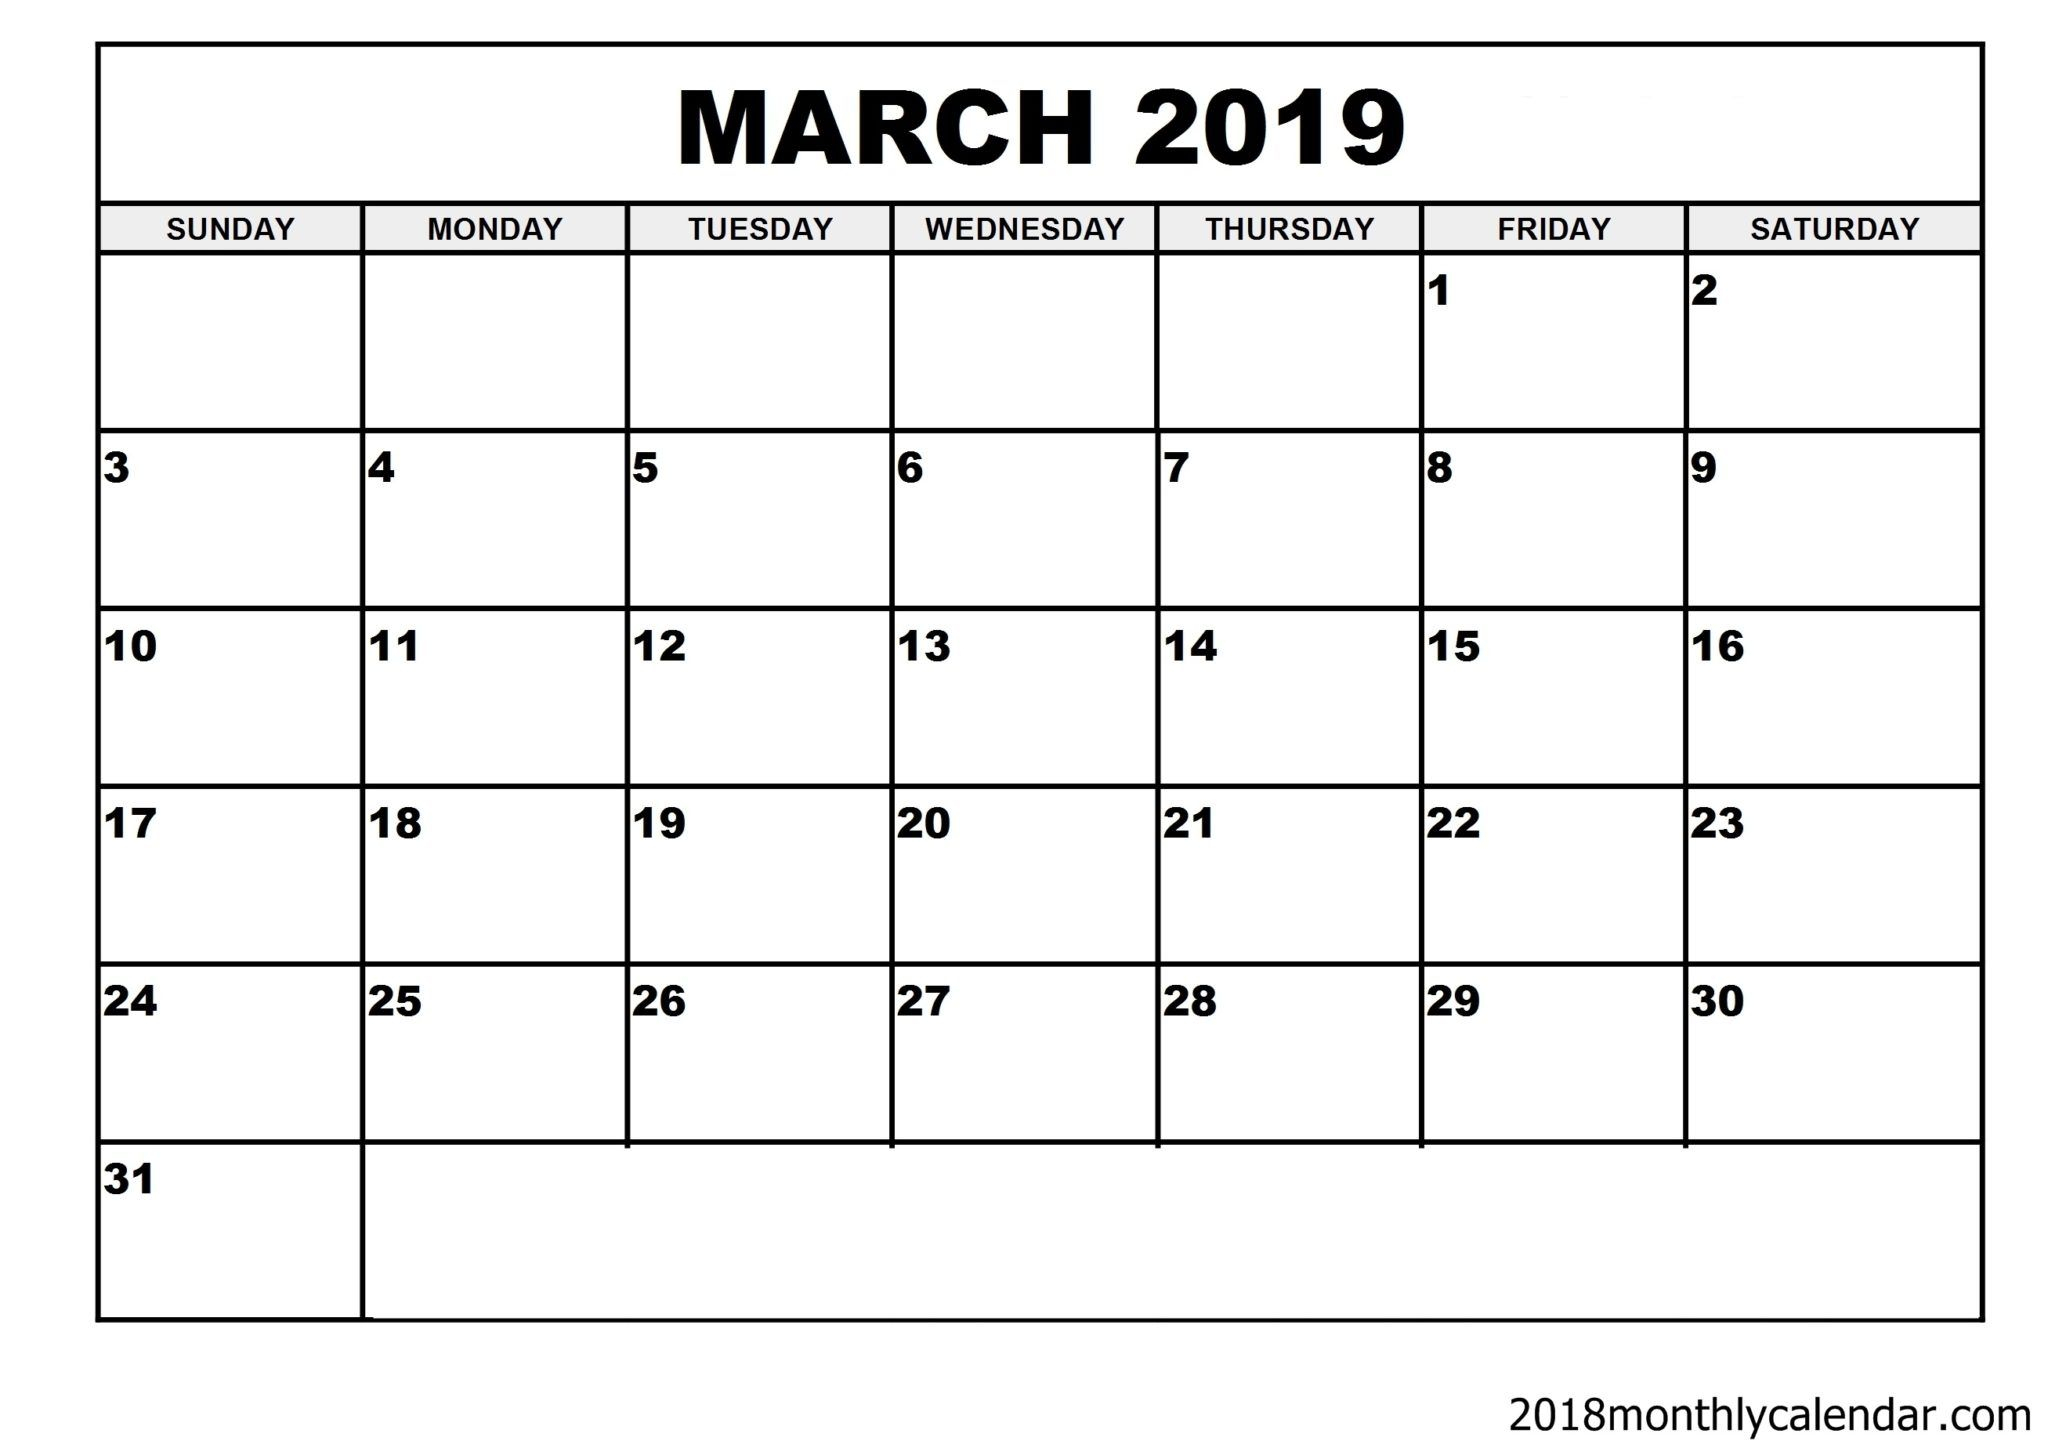 Download March 2019 Calendar – Blank Template - Editable Calendar intended for Editable Calendars Download Template